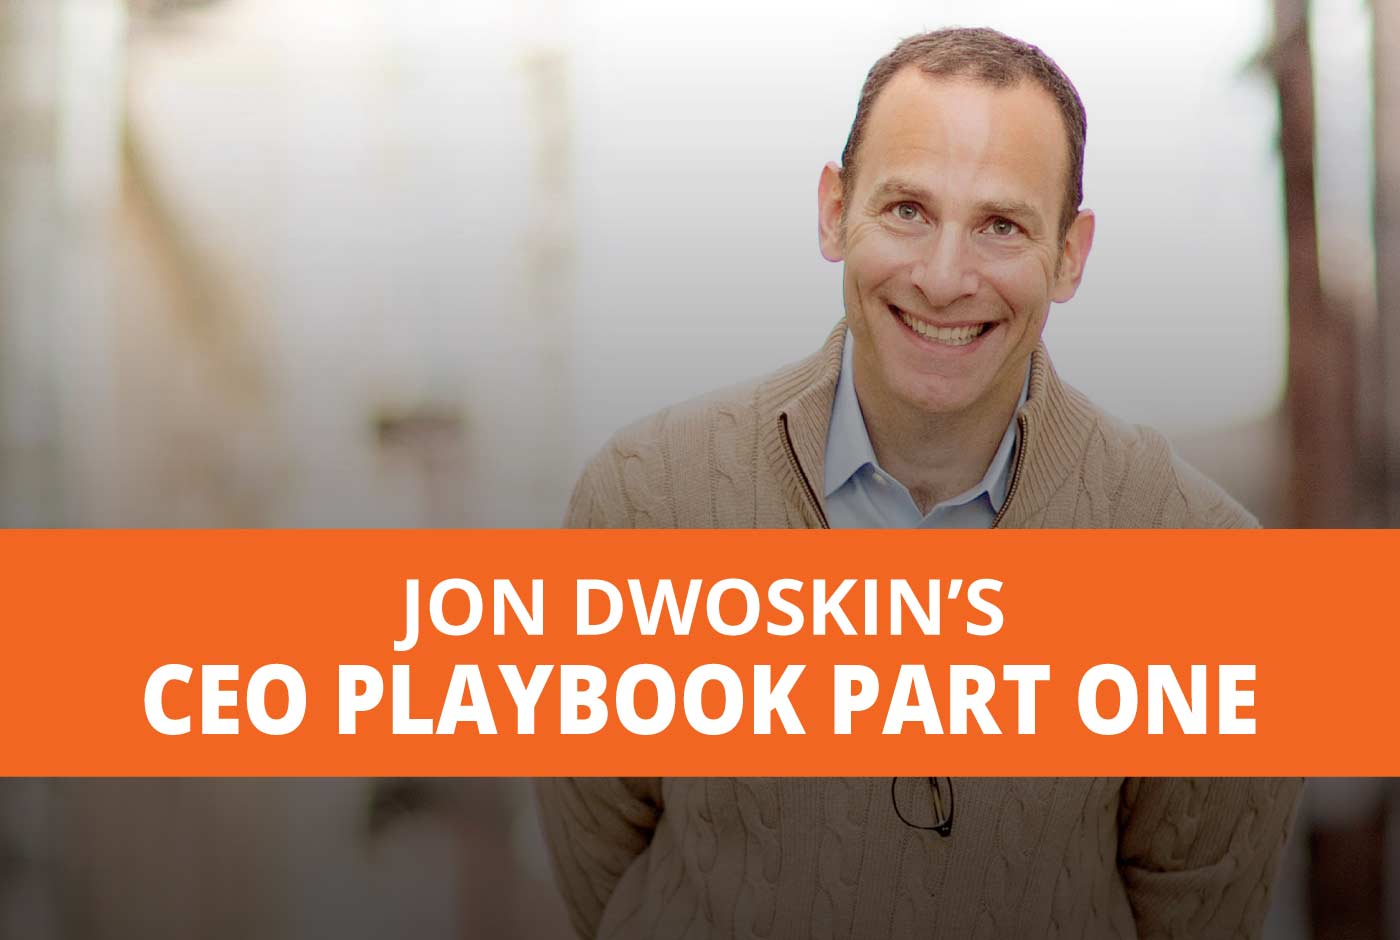 Jon Dwoskin Business Blog: Change Your Routine, Change Your Life - Jon Dwoskin's CEO Playbook: Part One